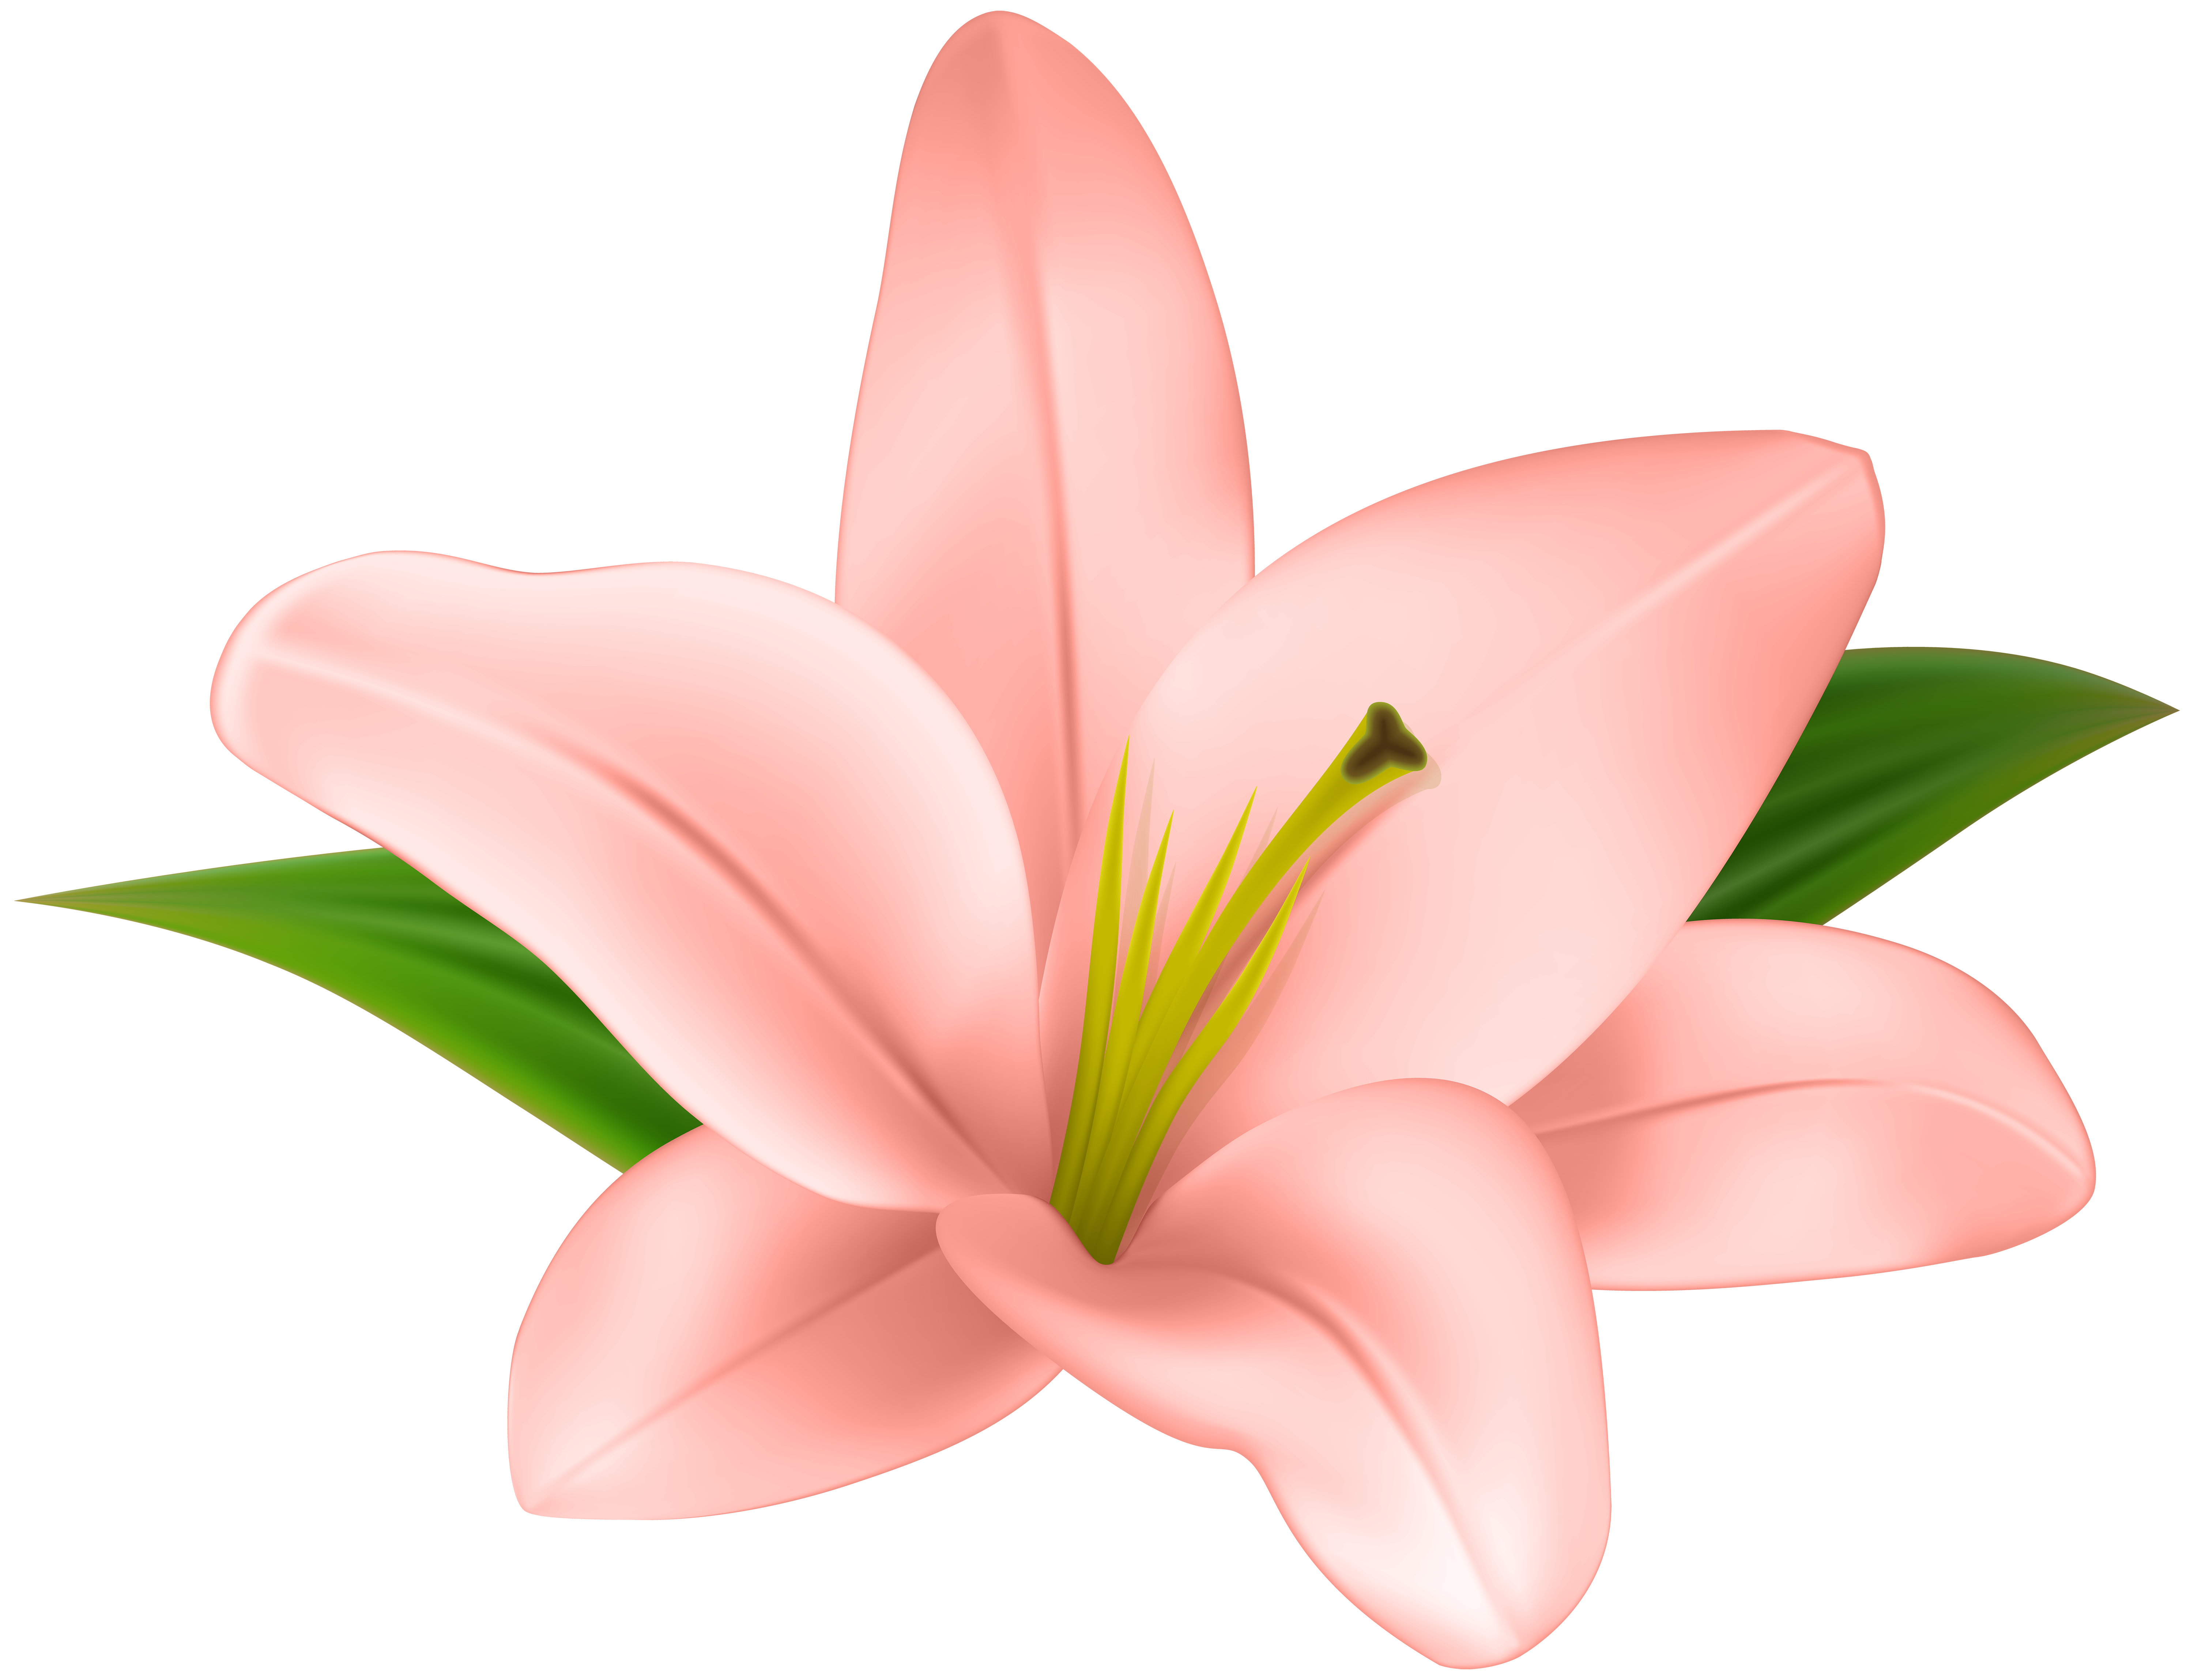 Lilies flowers clipart vector Lily flower art clipart images gallery for free download ... vector